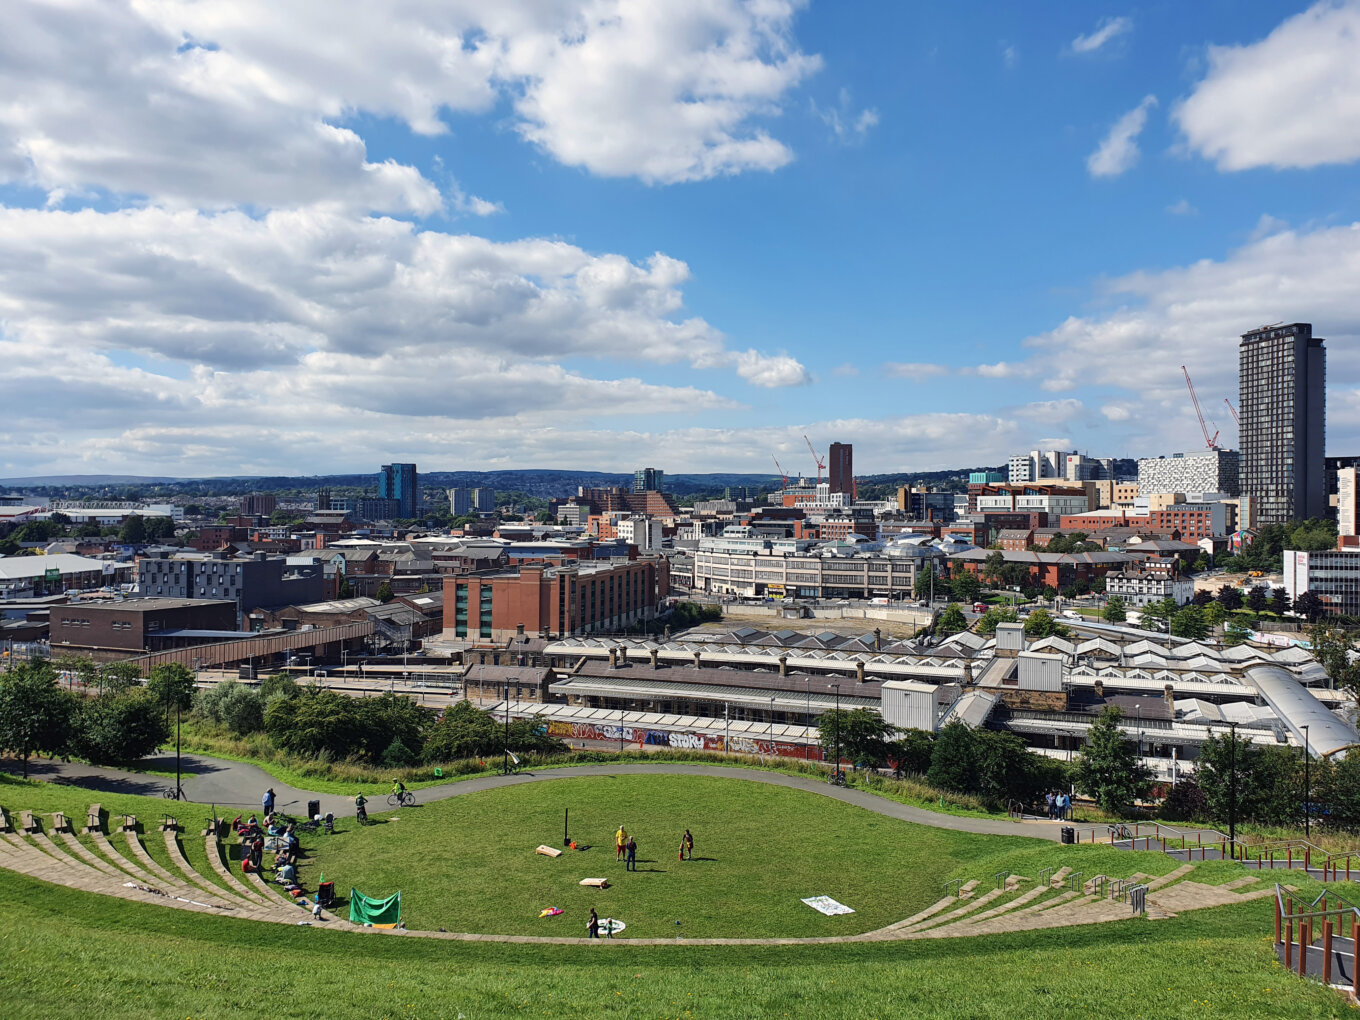 Sheffield city centre from above South Street amphitheatre - no credit needed